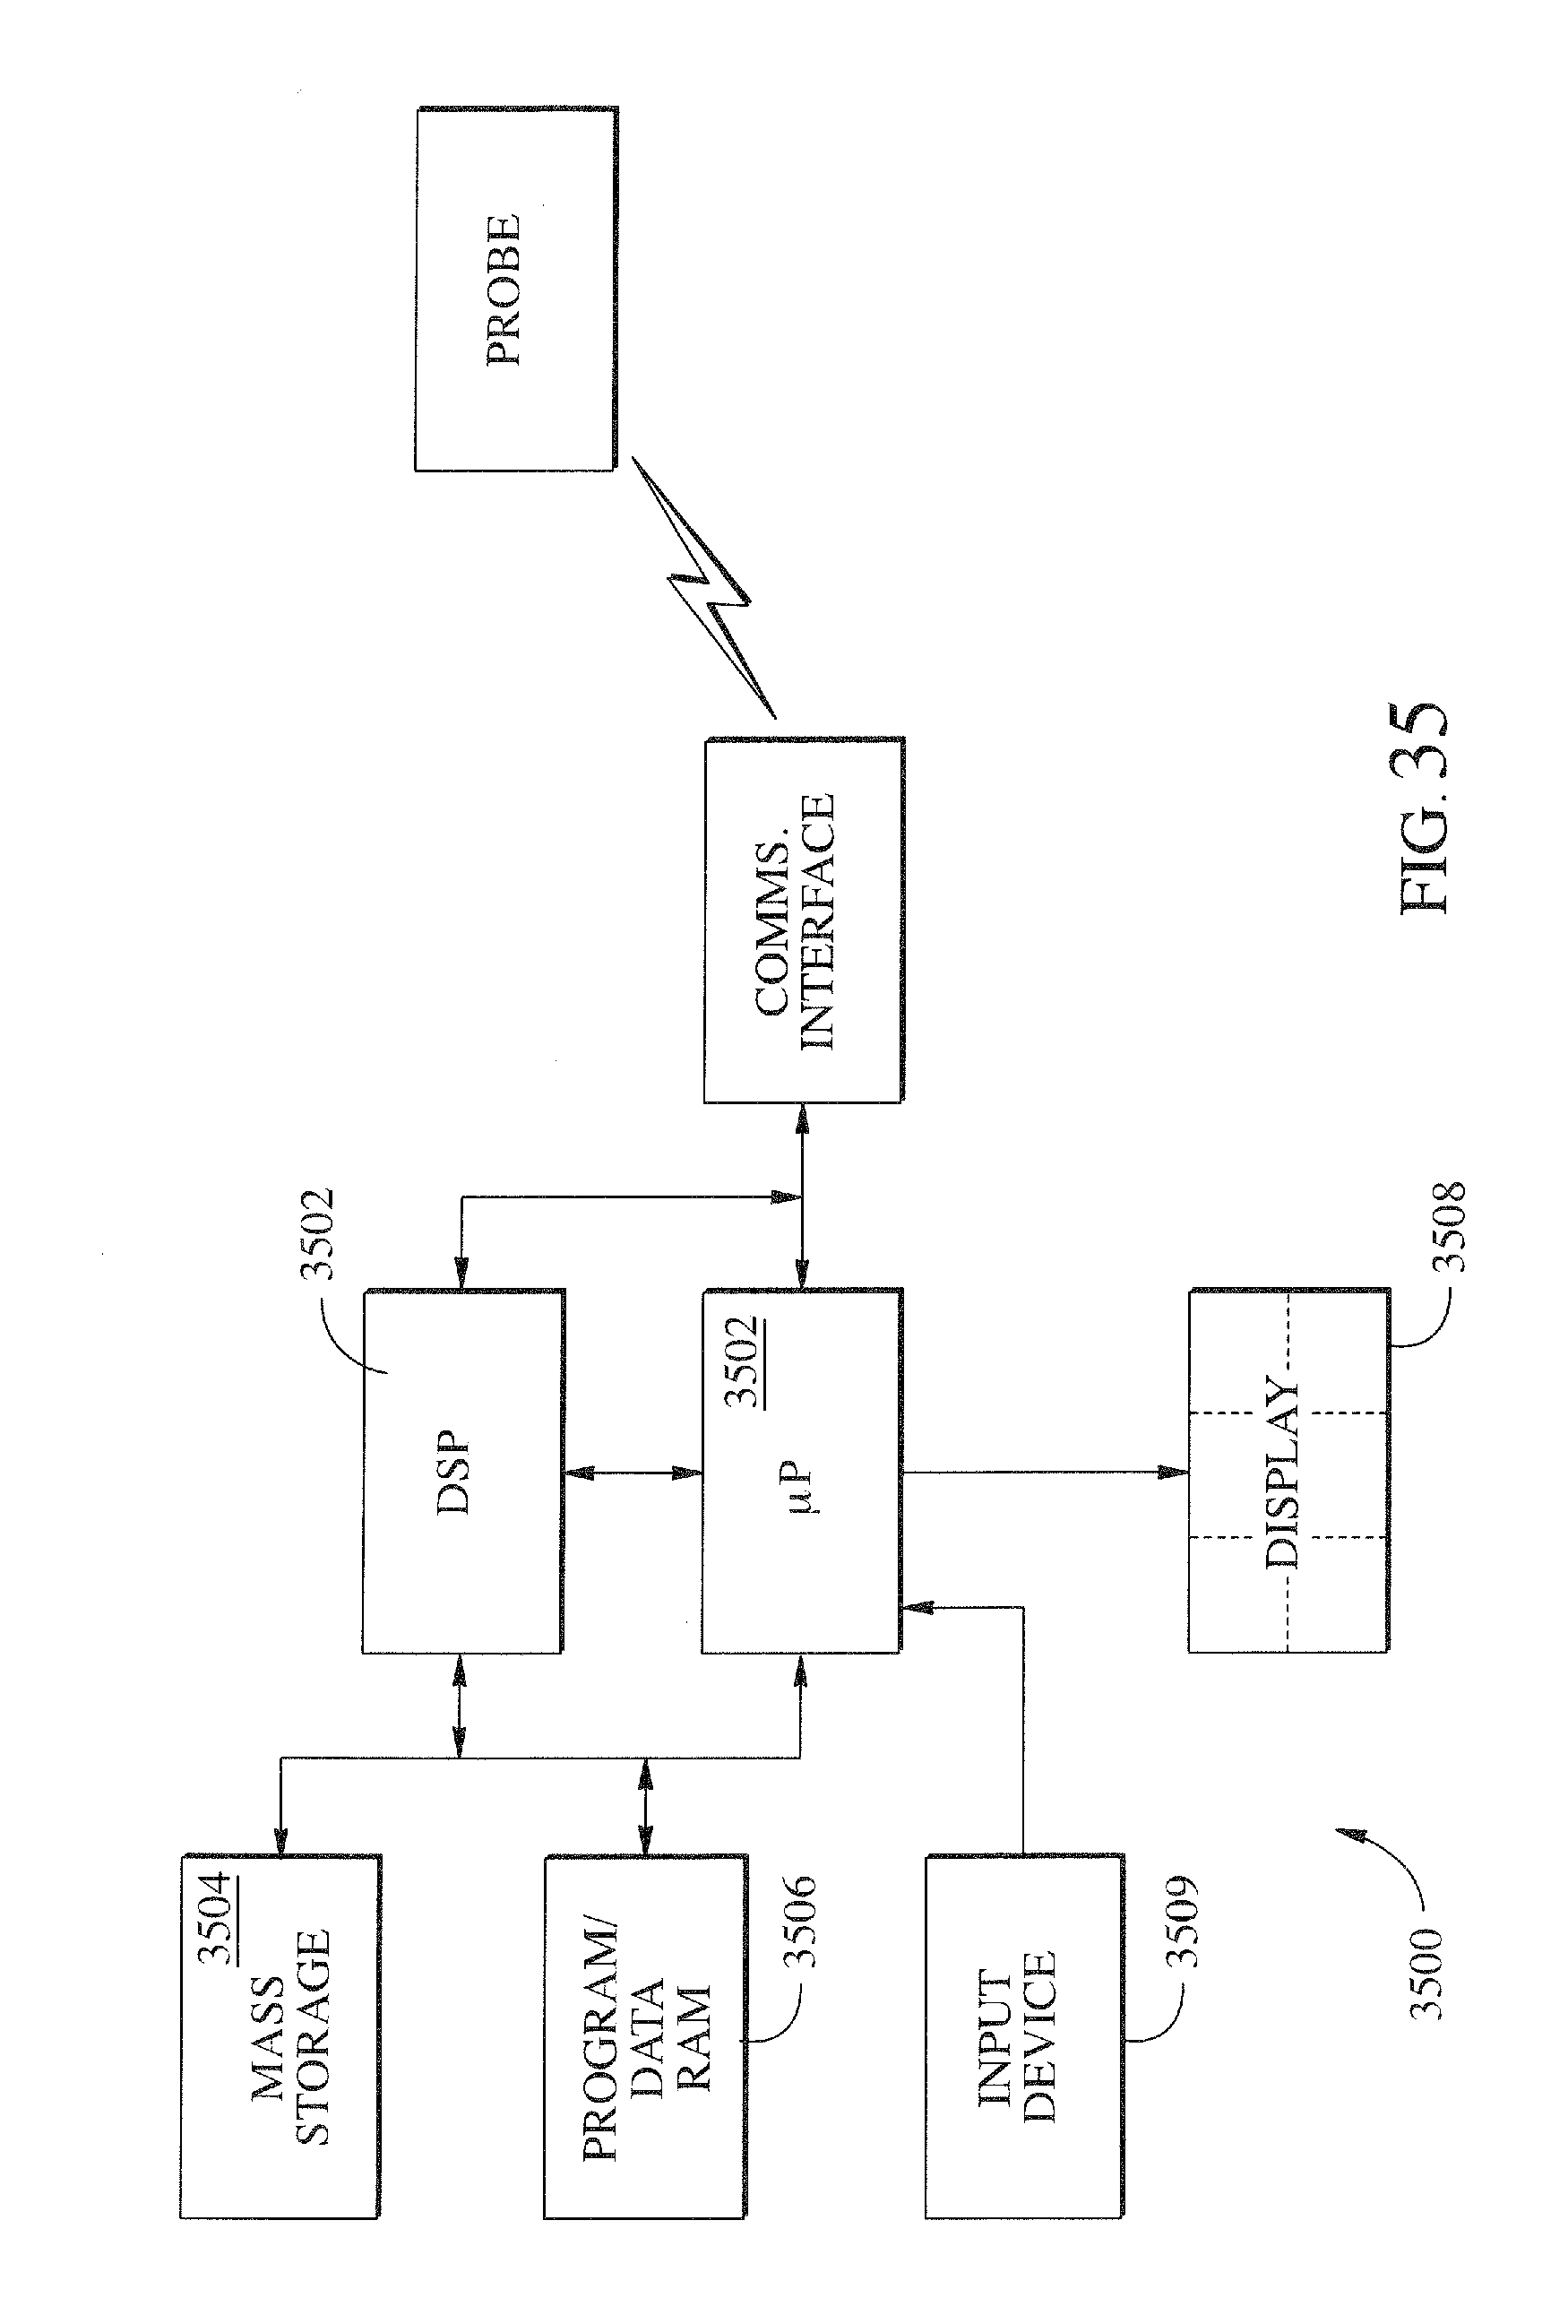 Patent Us 7914442 B1 Likewise Nimh Battery Charger Circuit Diagram On Cell Litigations